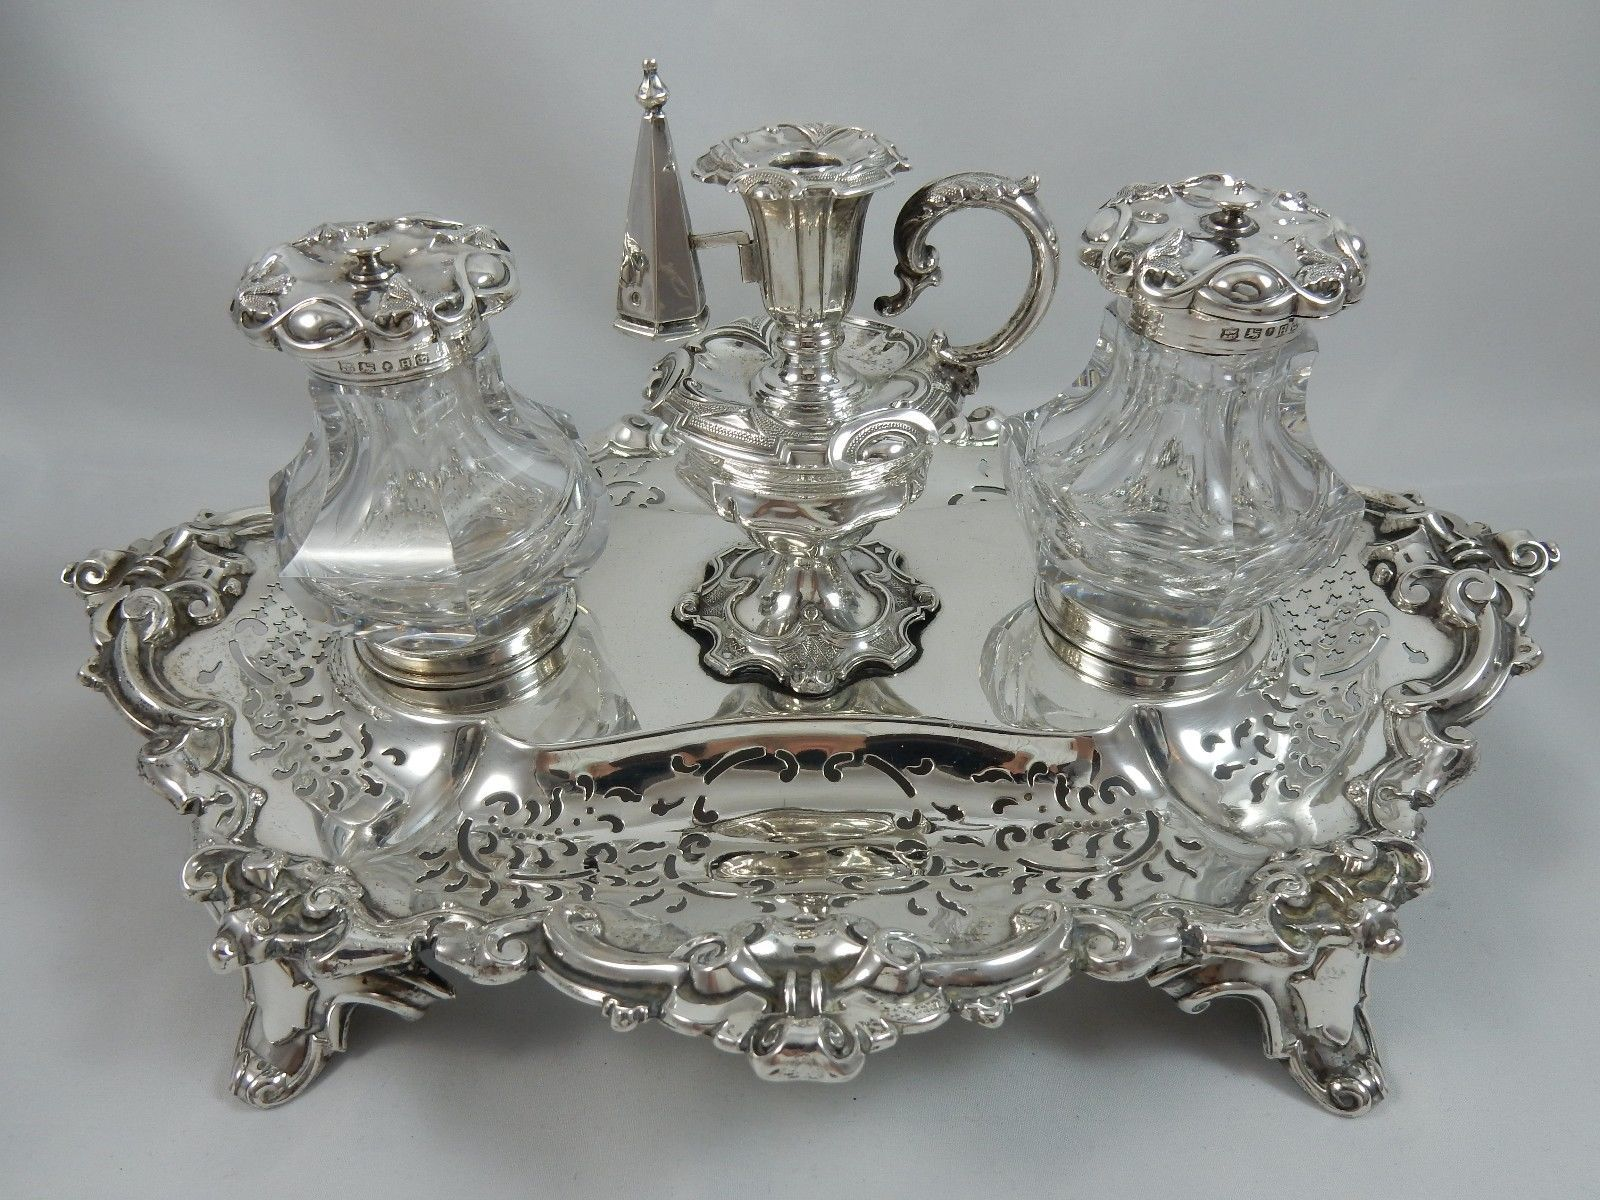 MAGNIFICENT VICTORIAN silver INK WELL 1851 1324gm https://t.co/M00ntxqWBq https://t.co/2UJ9l8YHo3